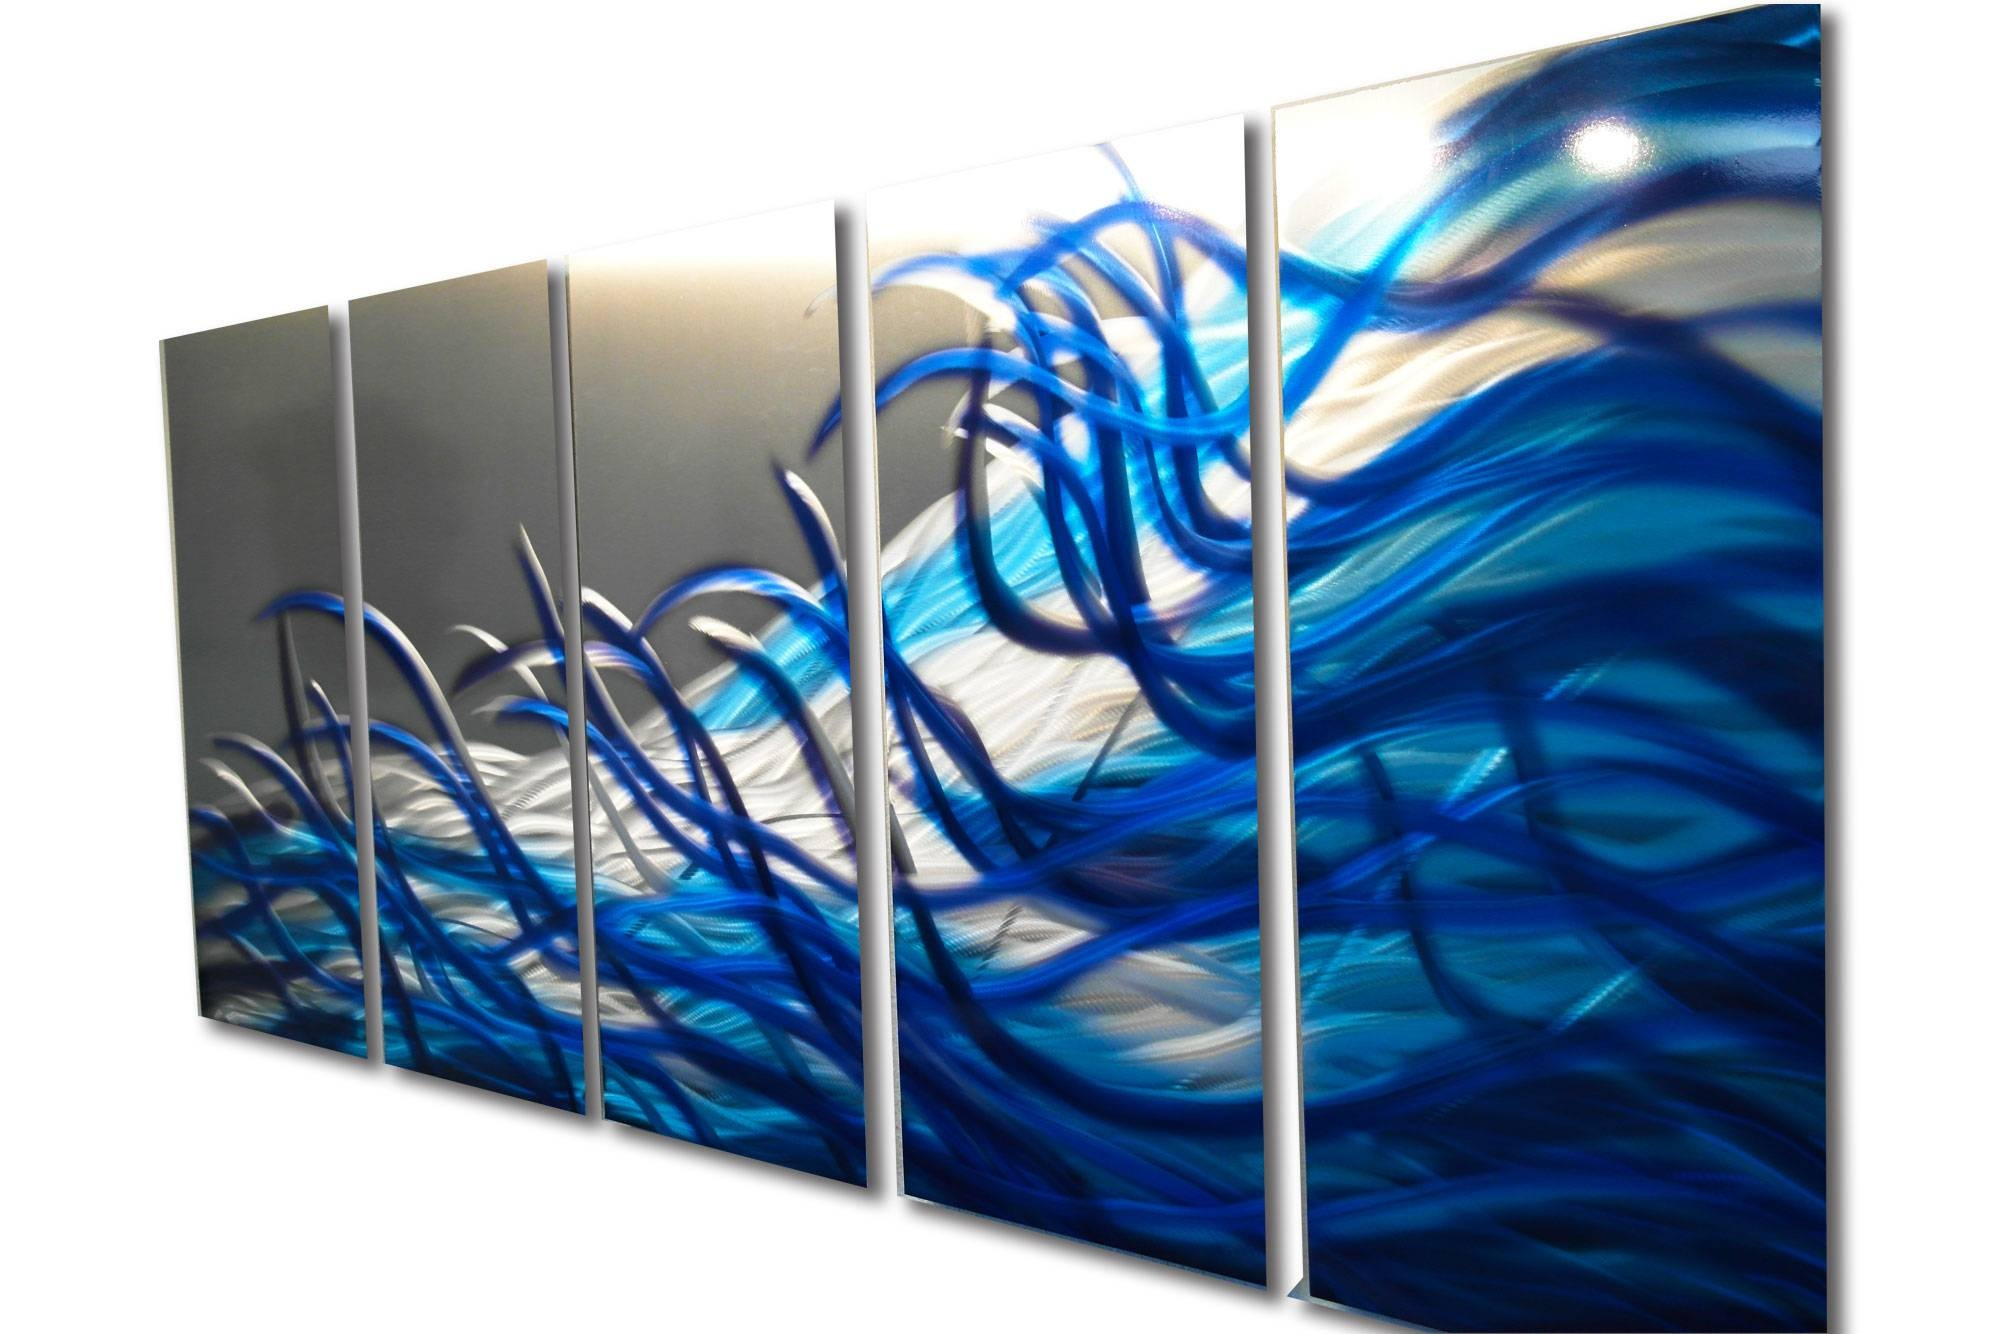 Resonance Blue 36X79  Metal Wall Art Contemporary Modern Decor In Most Up To Date Blue Metal Wall Art (View 19 of 20)